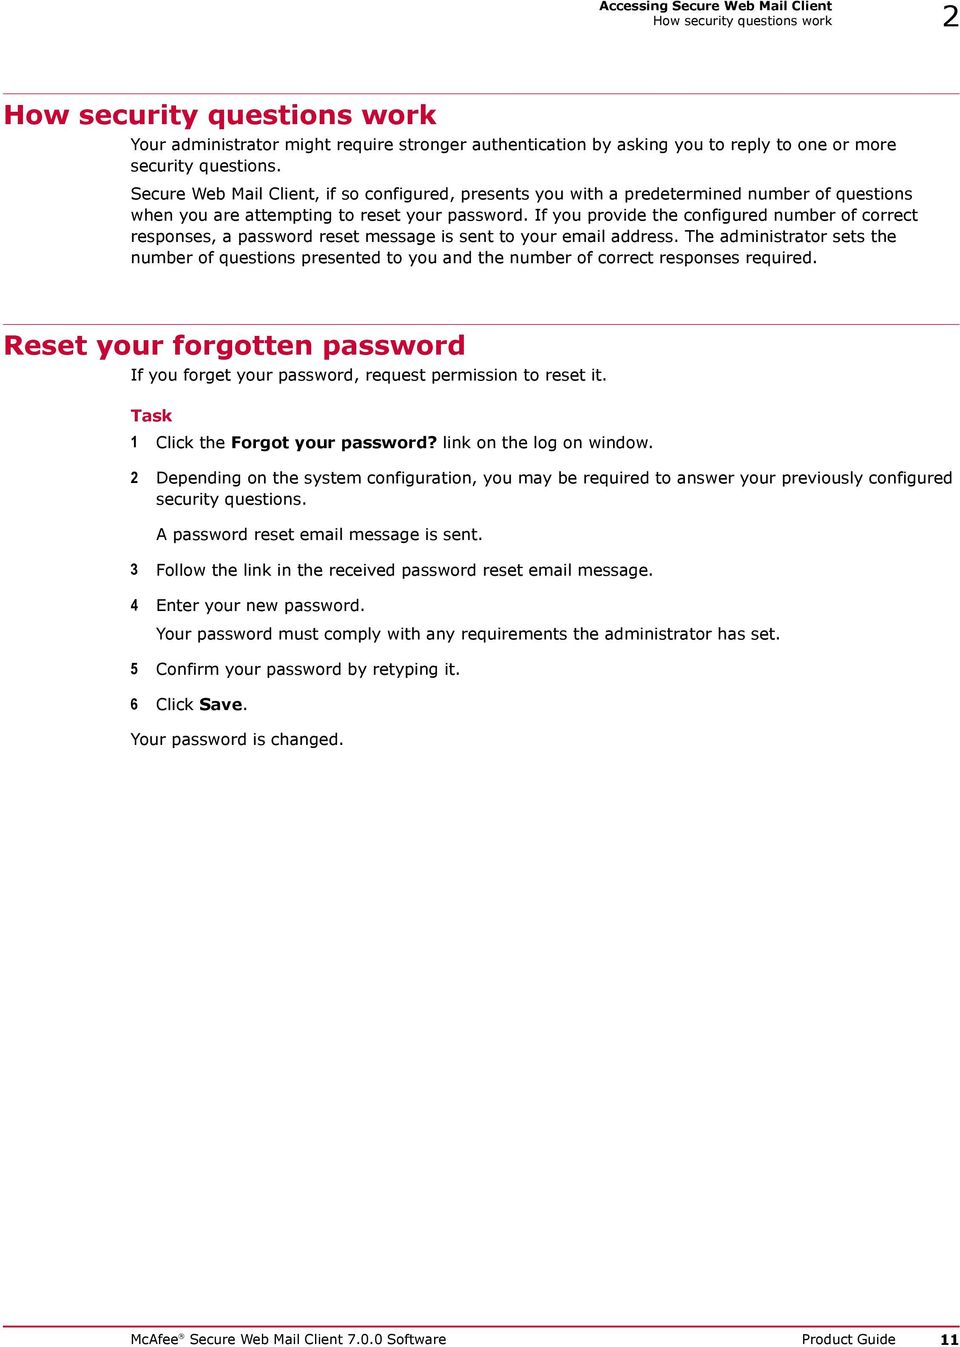 If you provide the configured number of correct responses, a password reset message is sent to your email address.